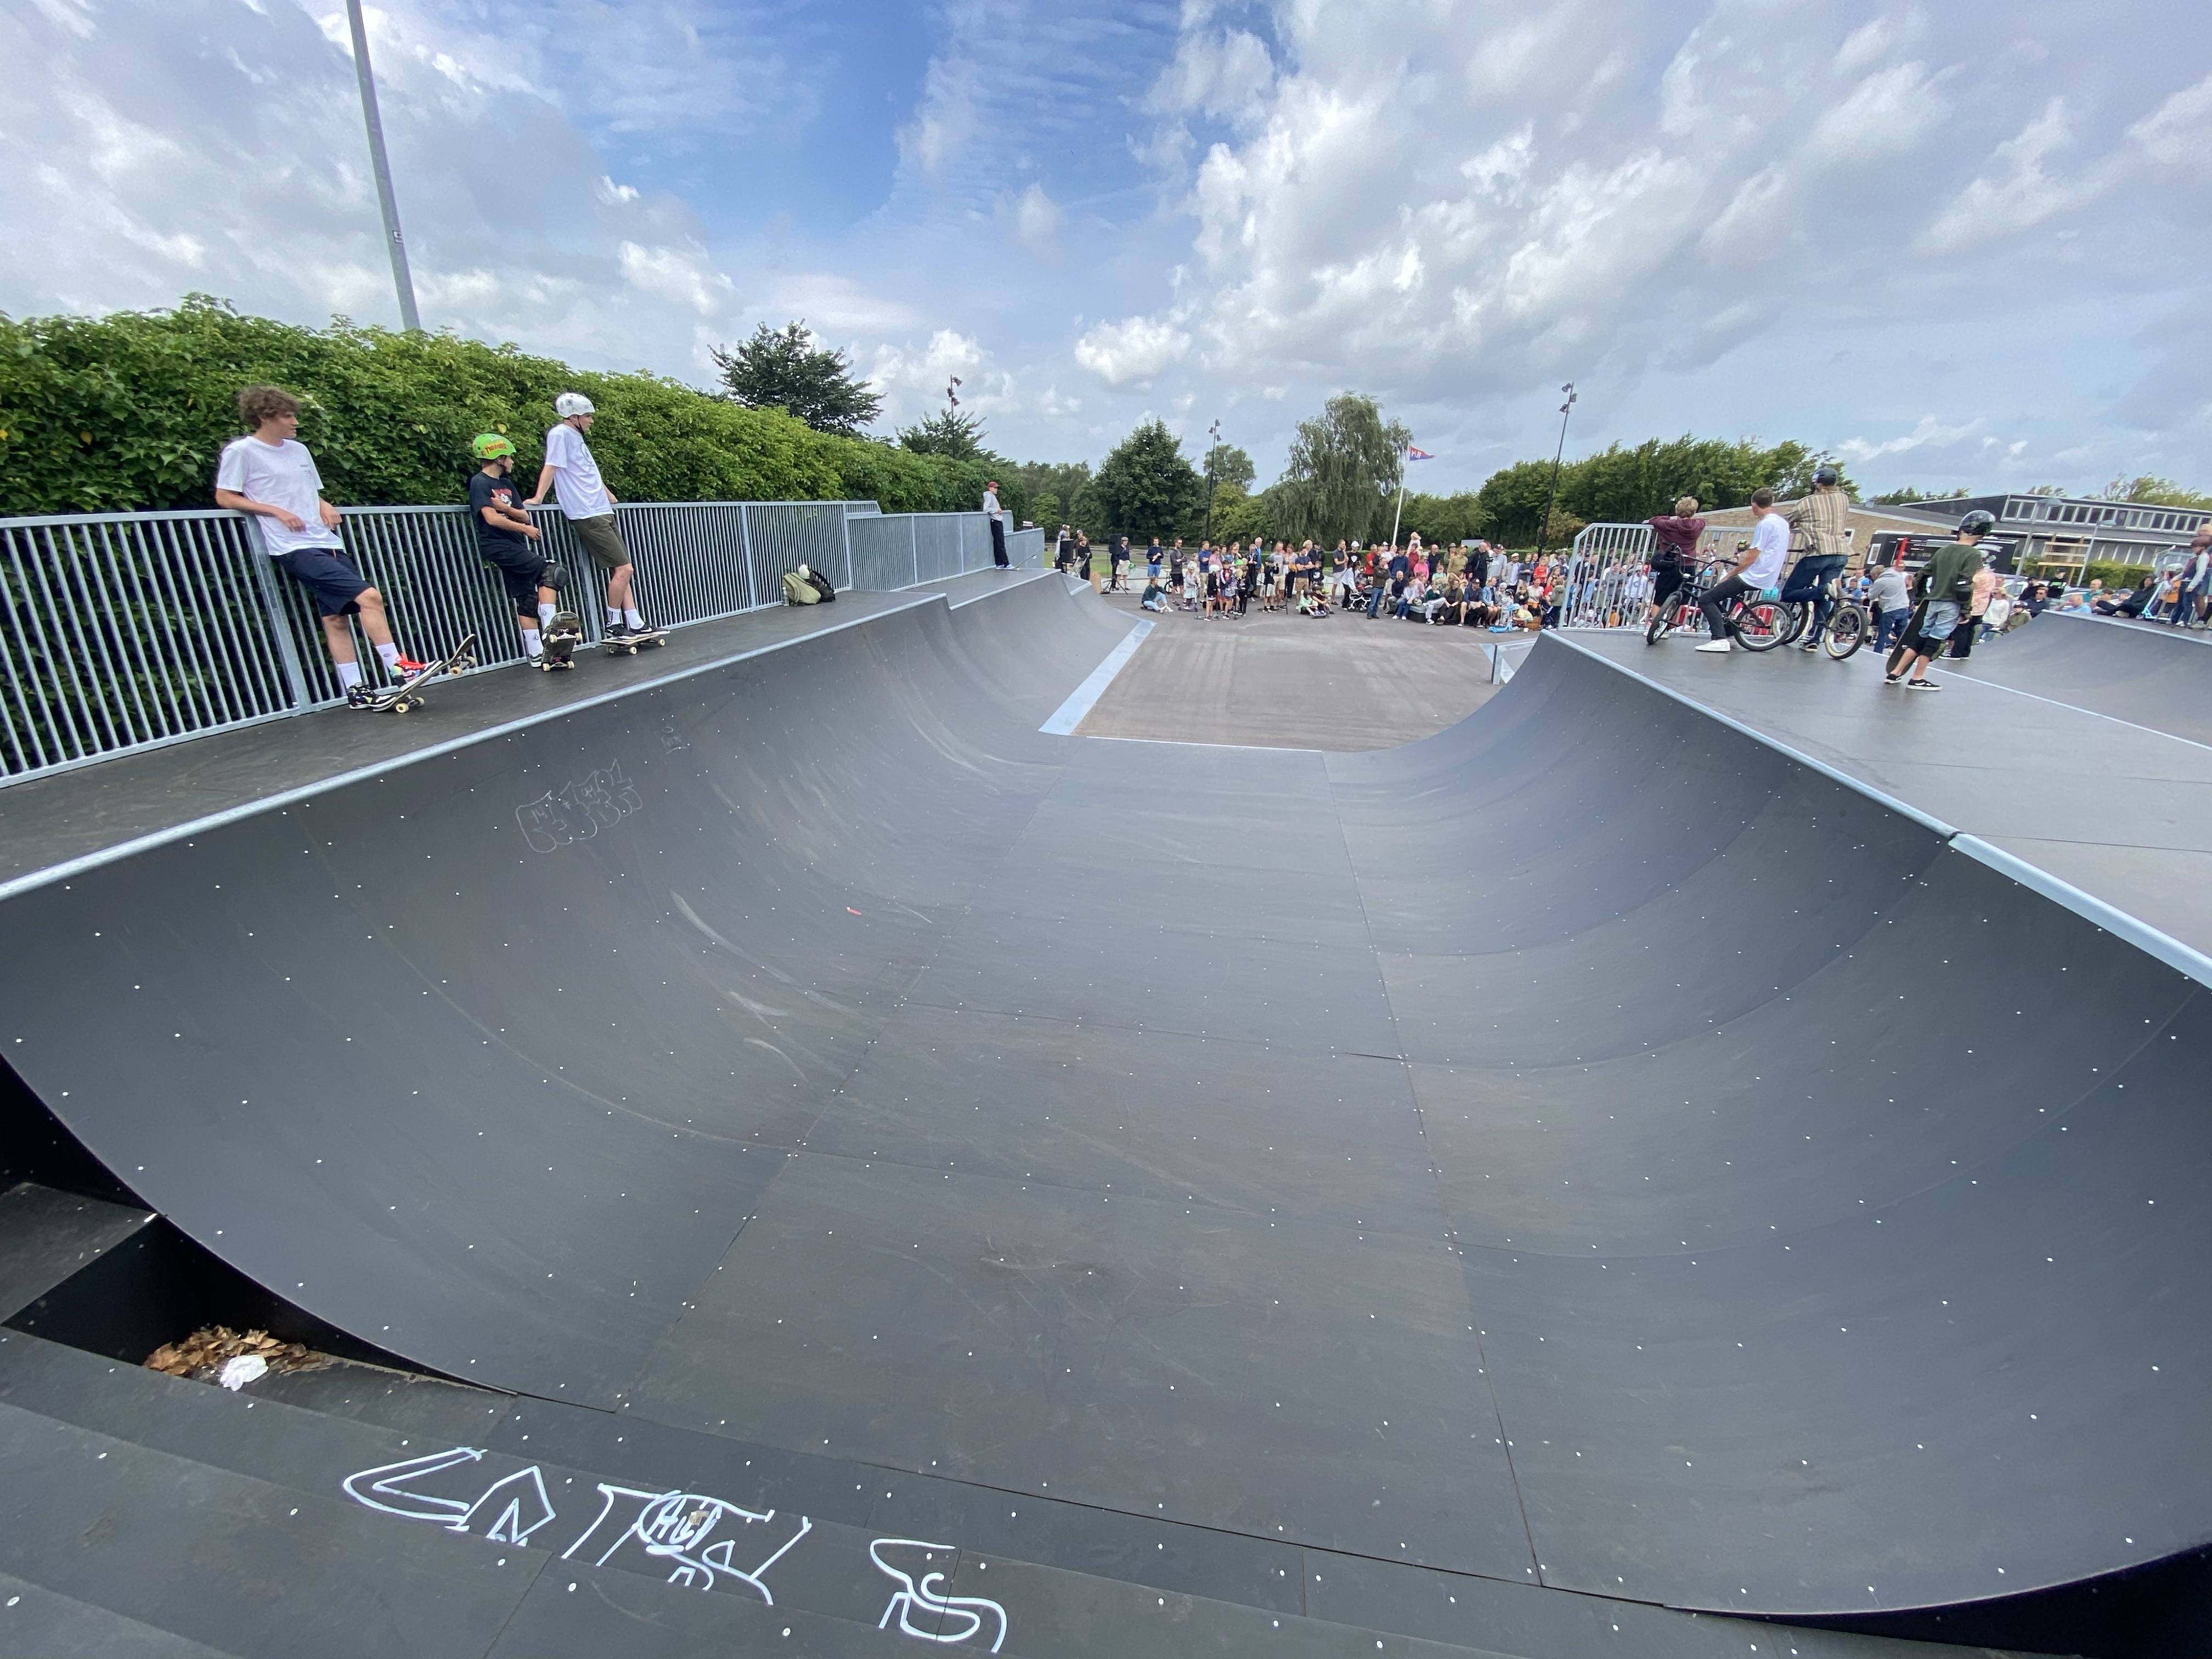 This is mini ramp greatness